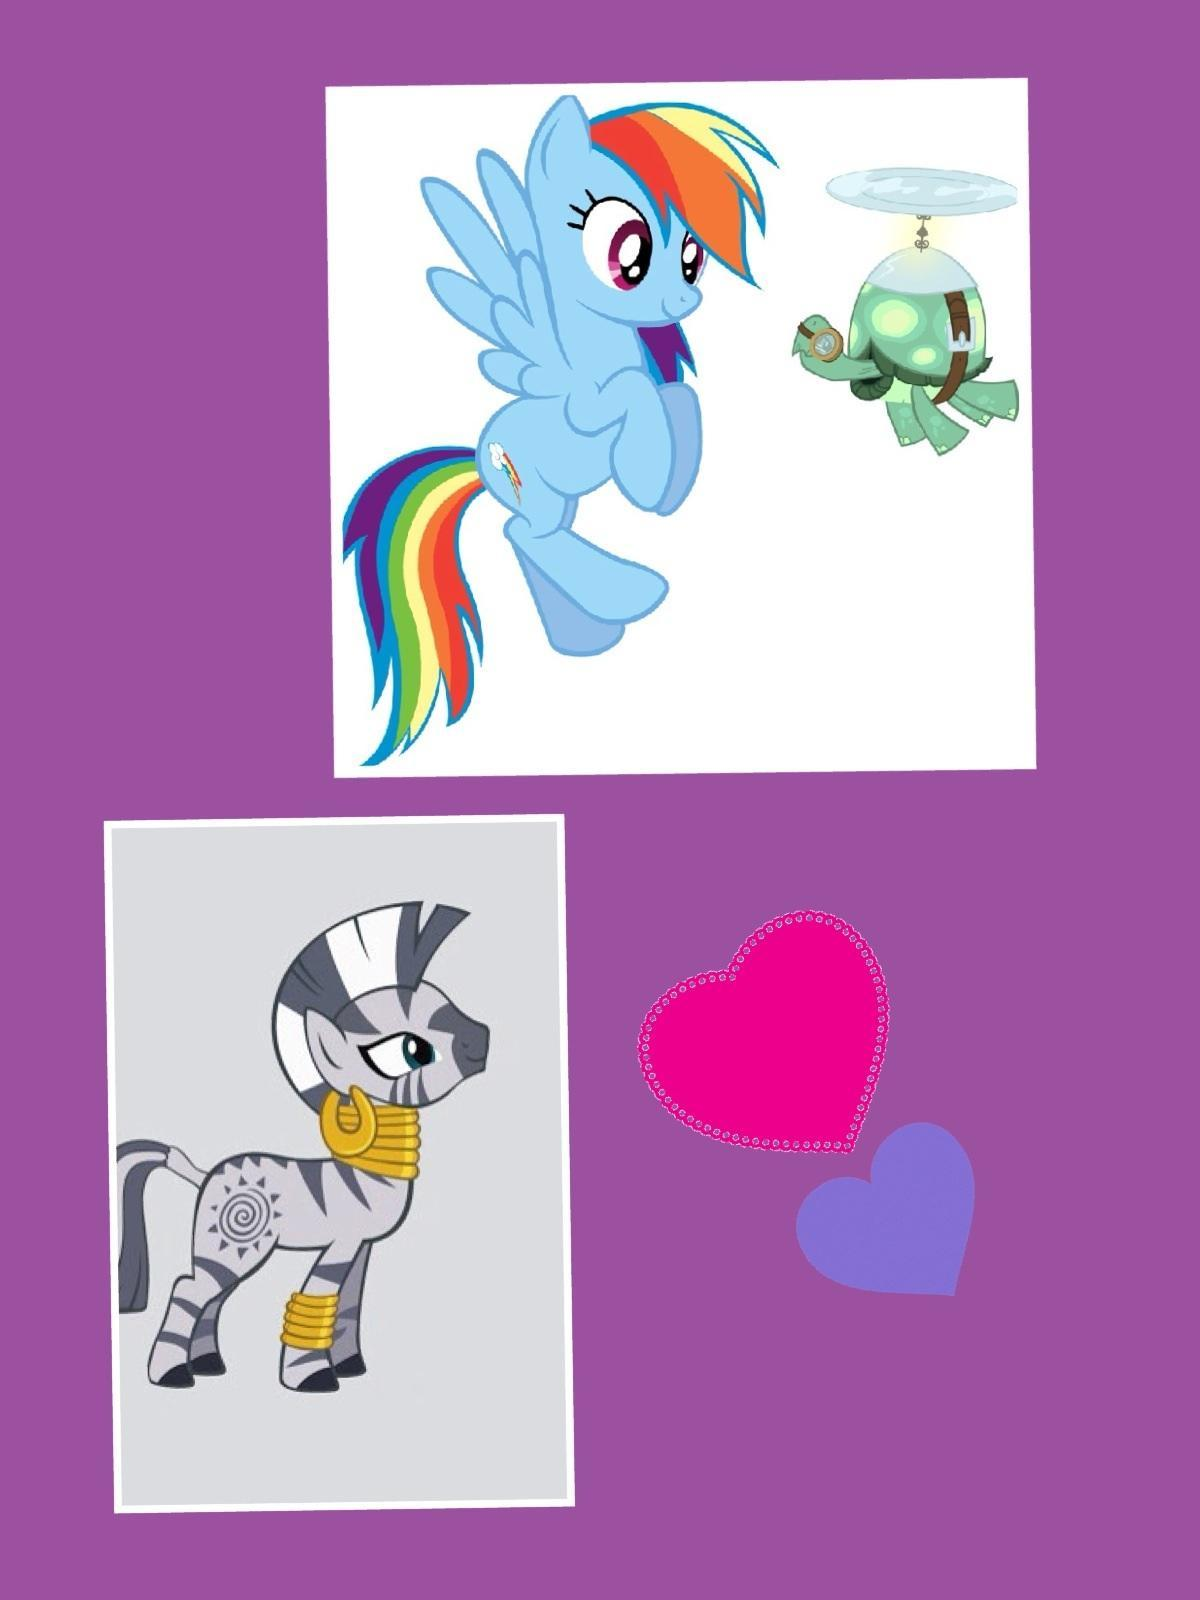 Are you more like Zecoera or rainbow dash from my little pony?